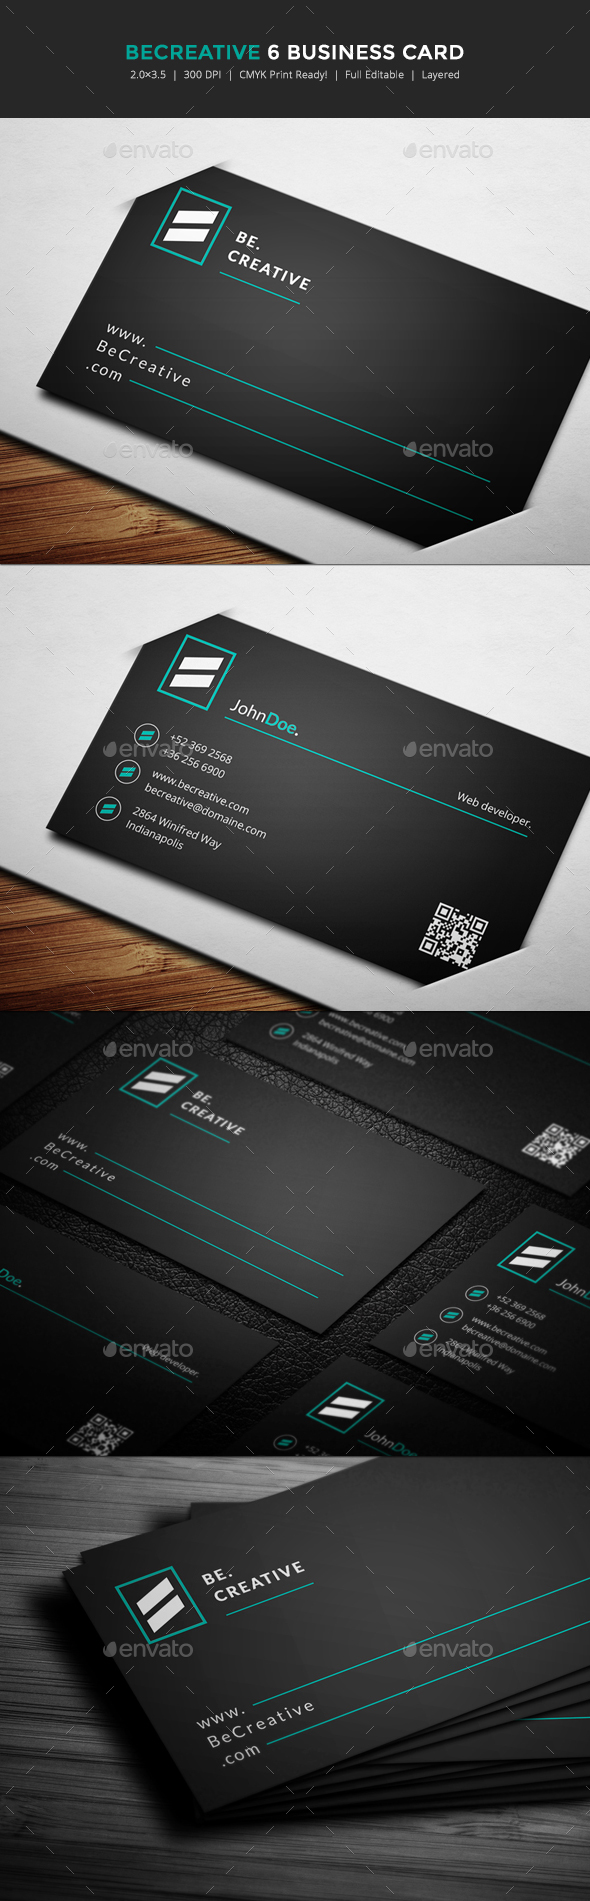 BeCreative 6 Business Card - Corporate Business Cards